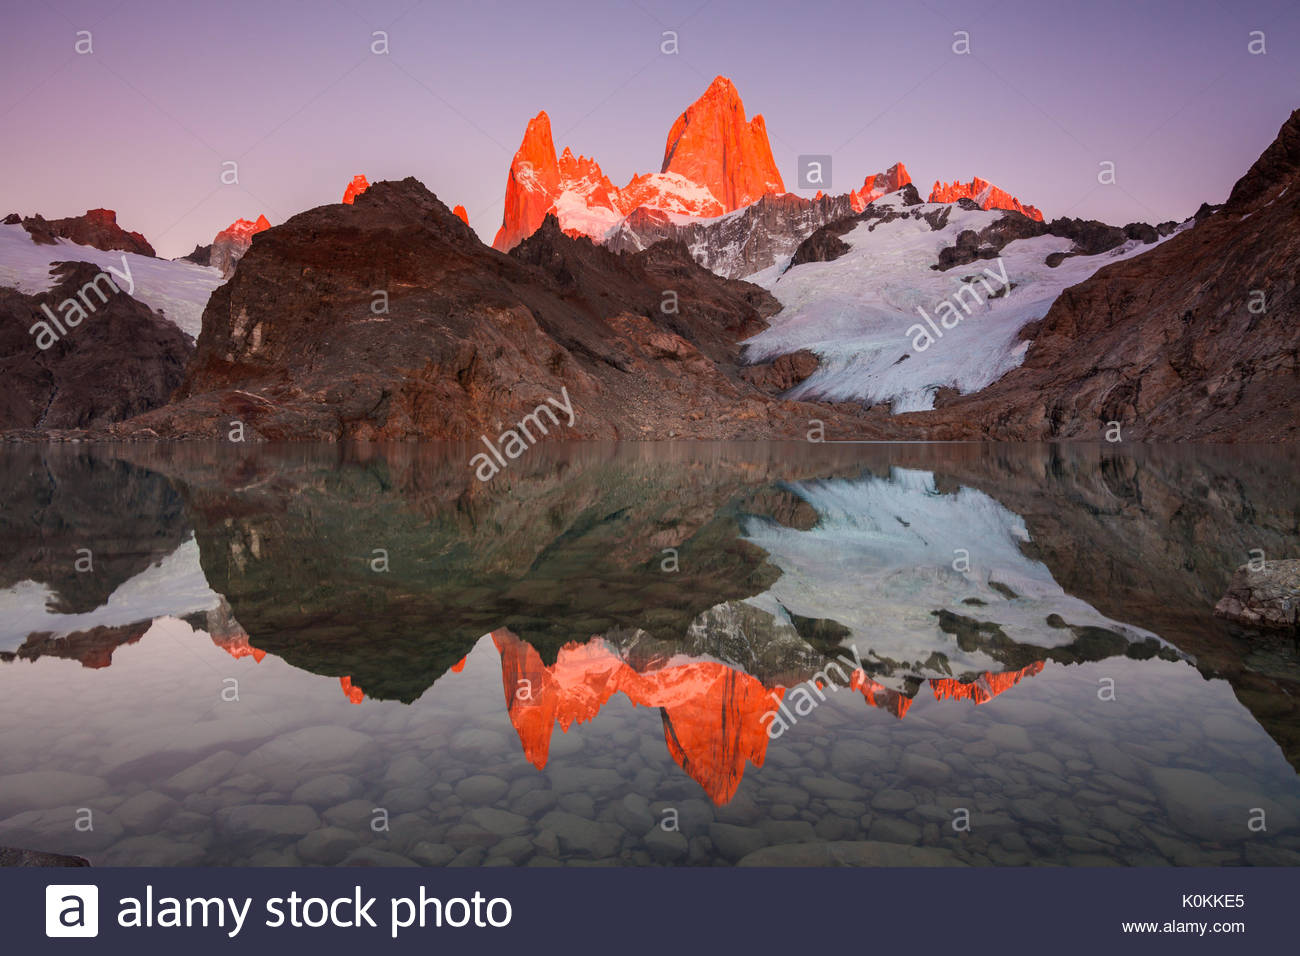 Autumn in Patagonia. Fitz Roy, Argentina - Stock Image